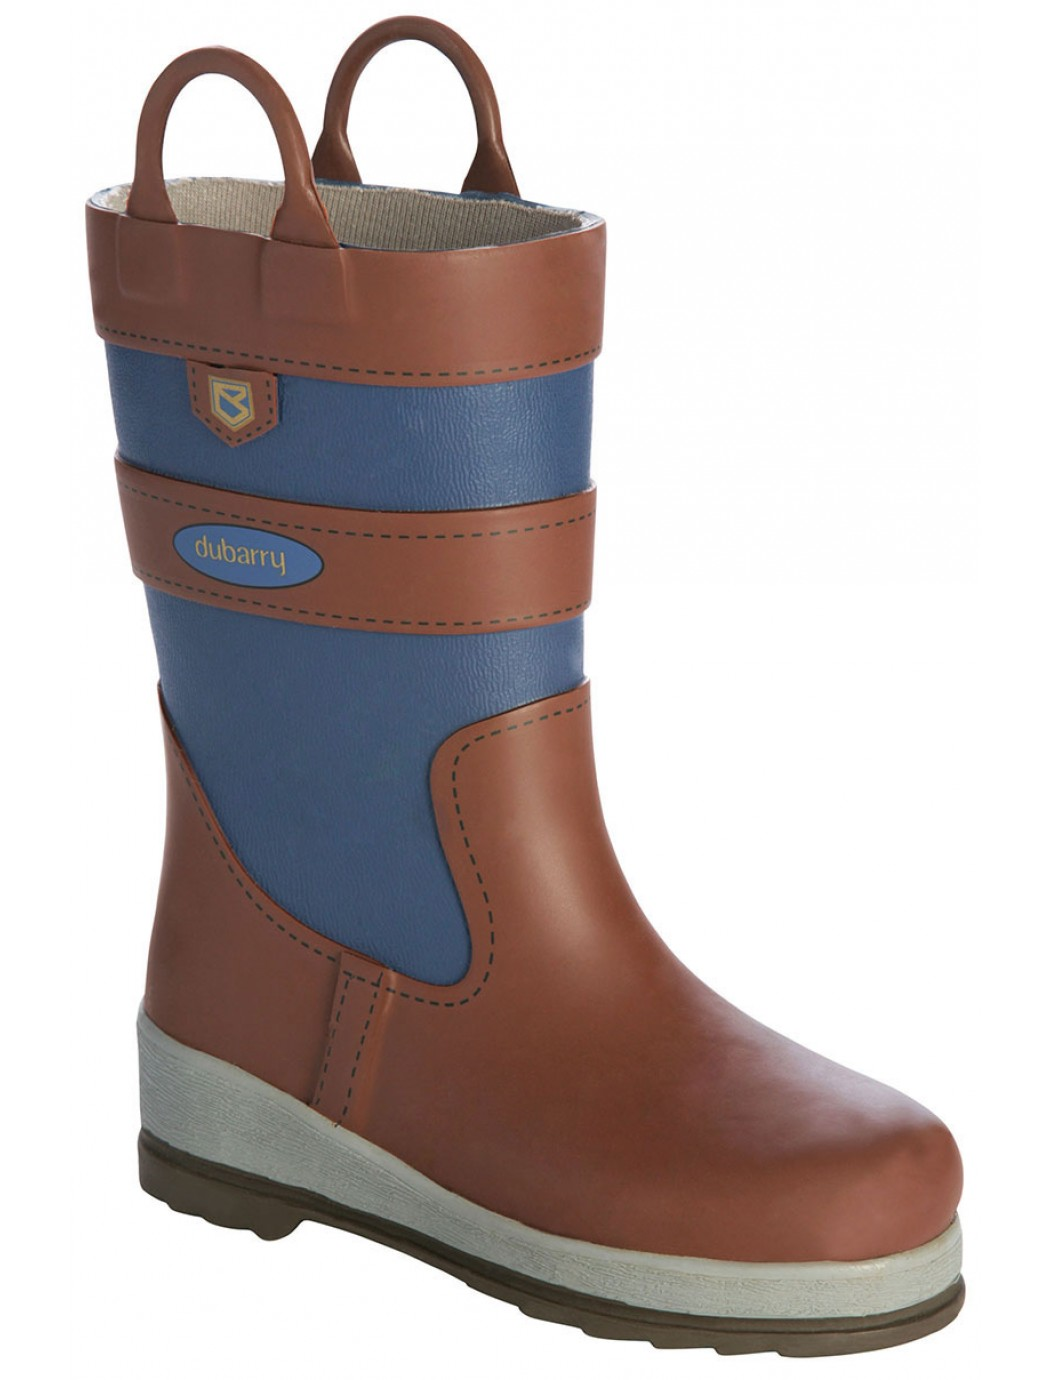 pond-kids-brown-navy